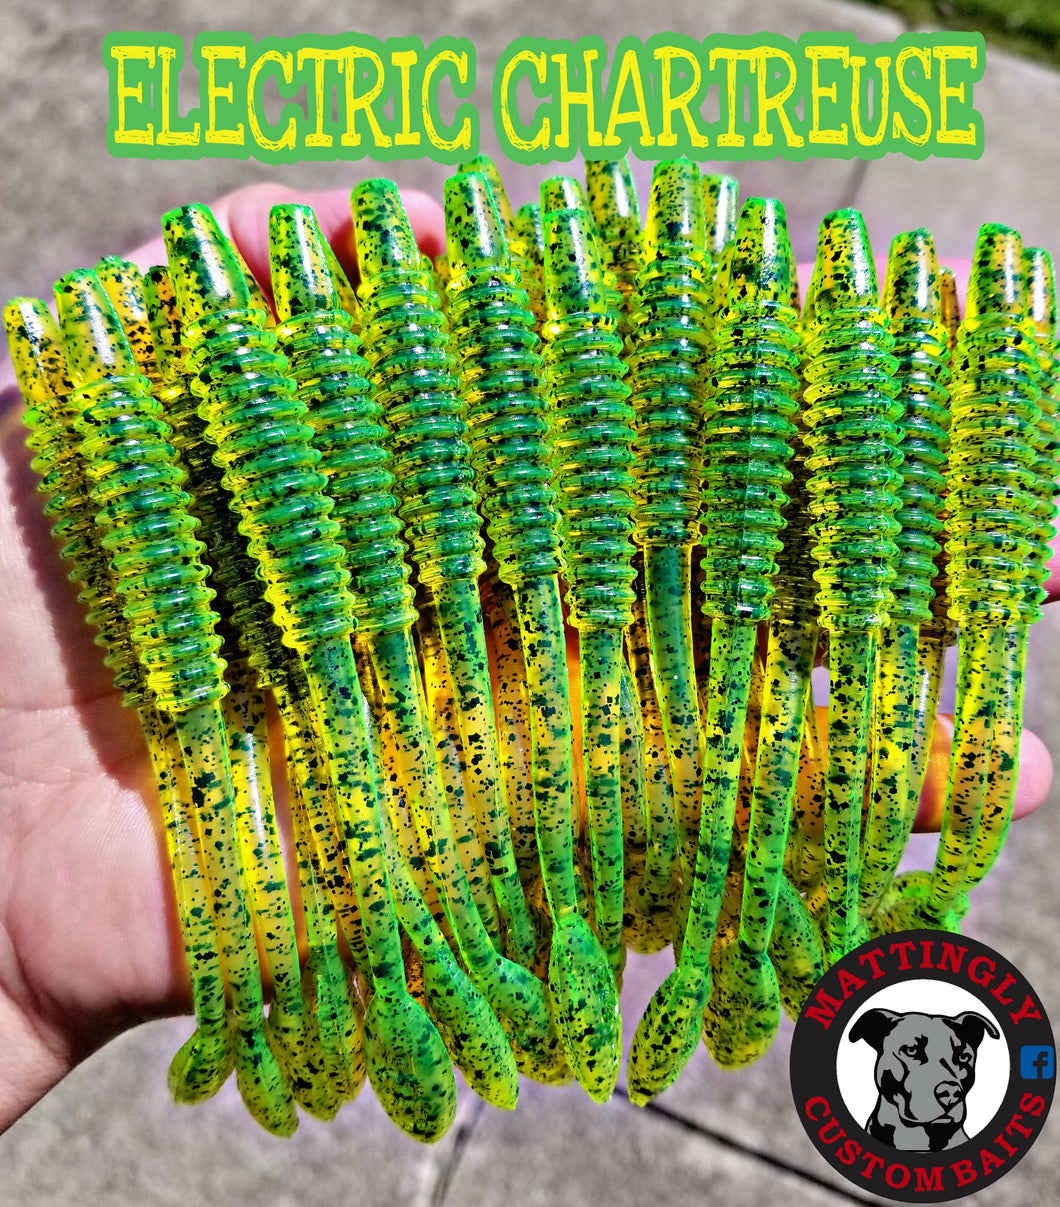 Electric Chartreuse 5.25